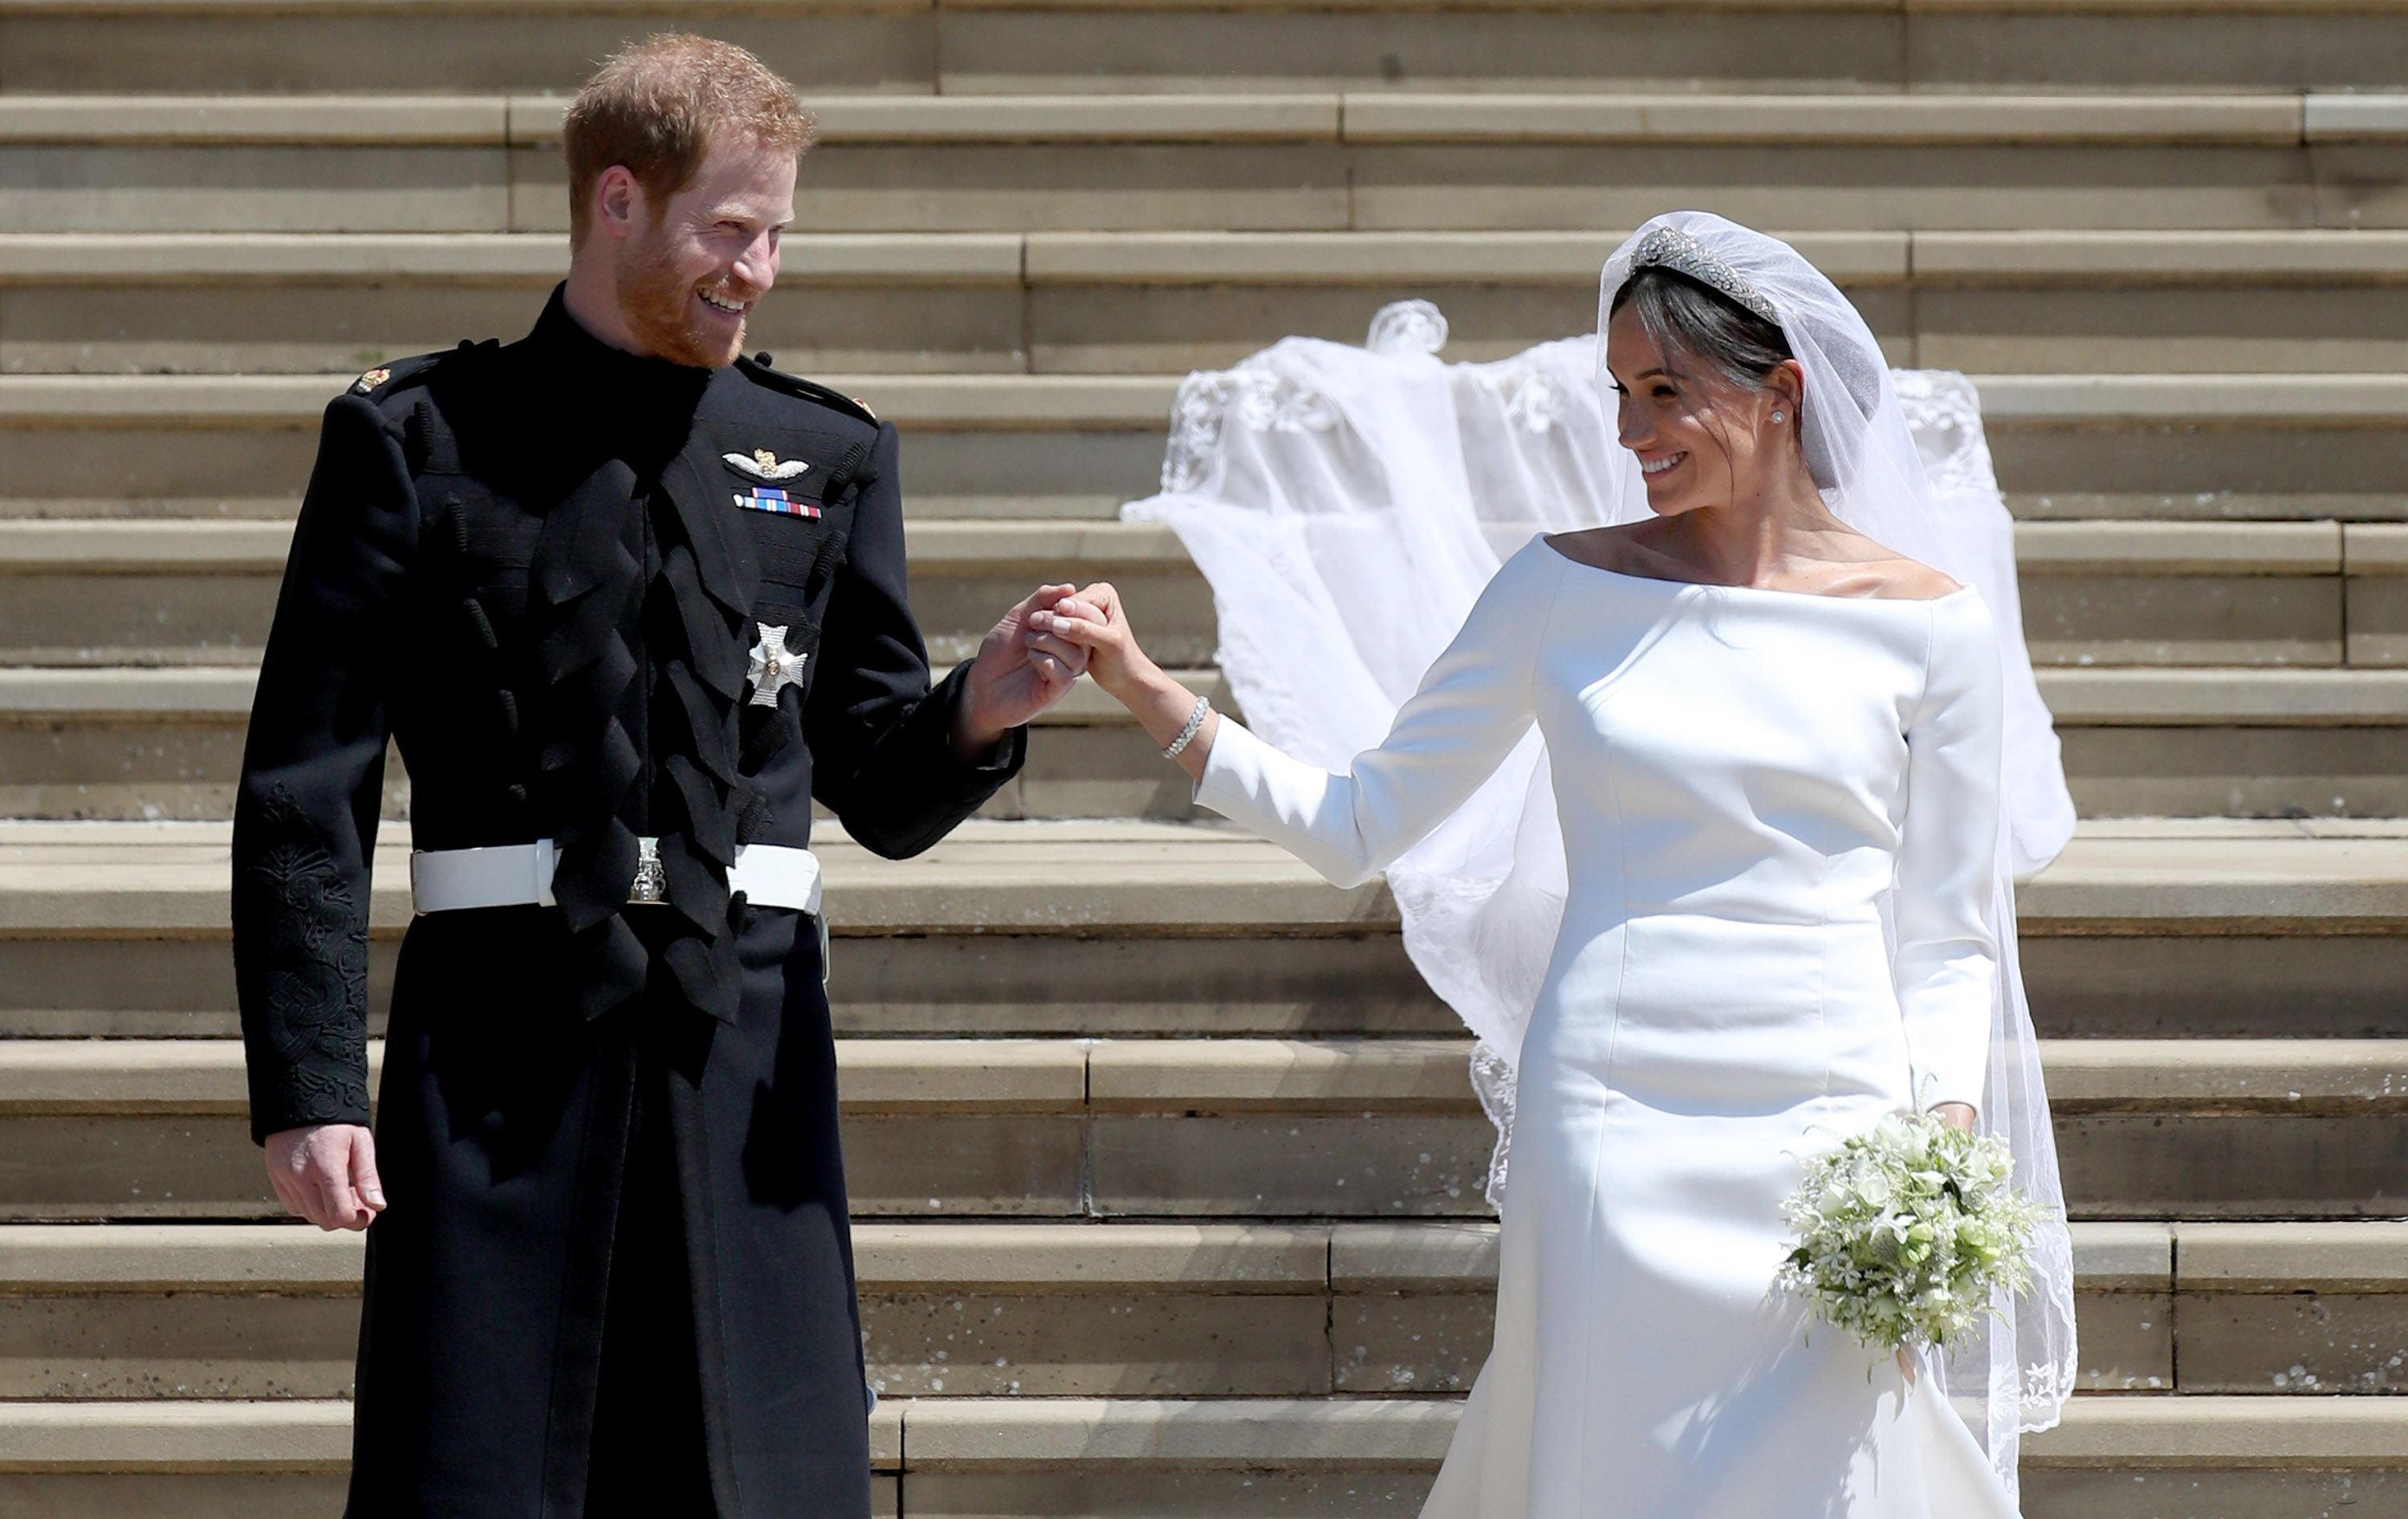 Prince Harry and Meghan Markle depart after their wedding ceremony at St George's Chapel at Windsor Castle on May 19, 2018 in Windsor, England.   Photo: Getty Images